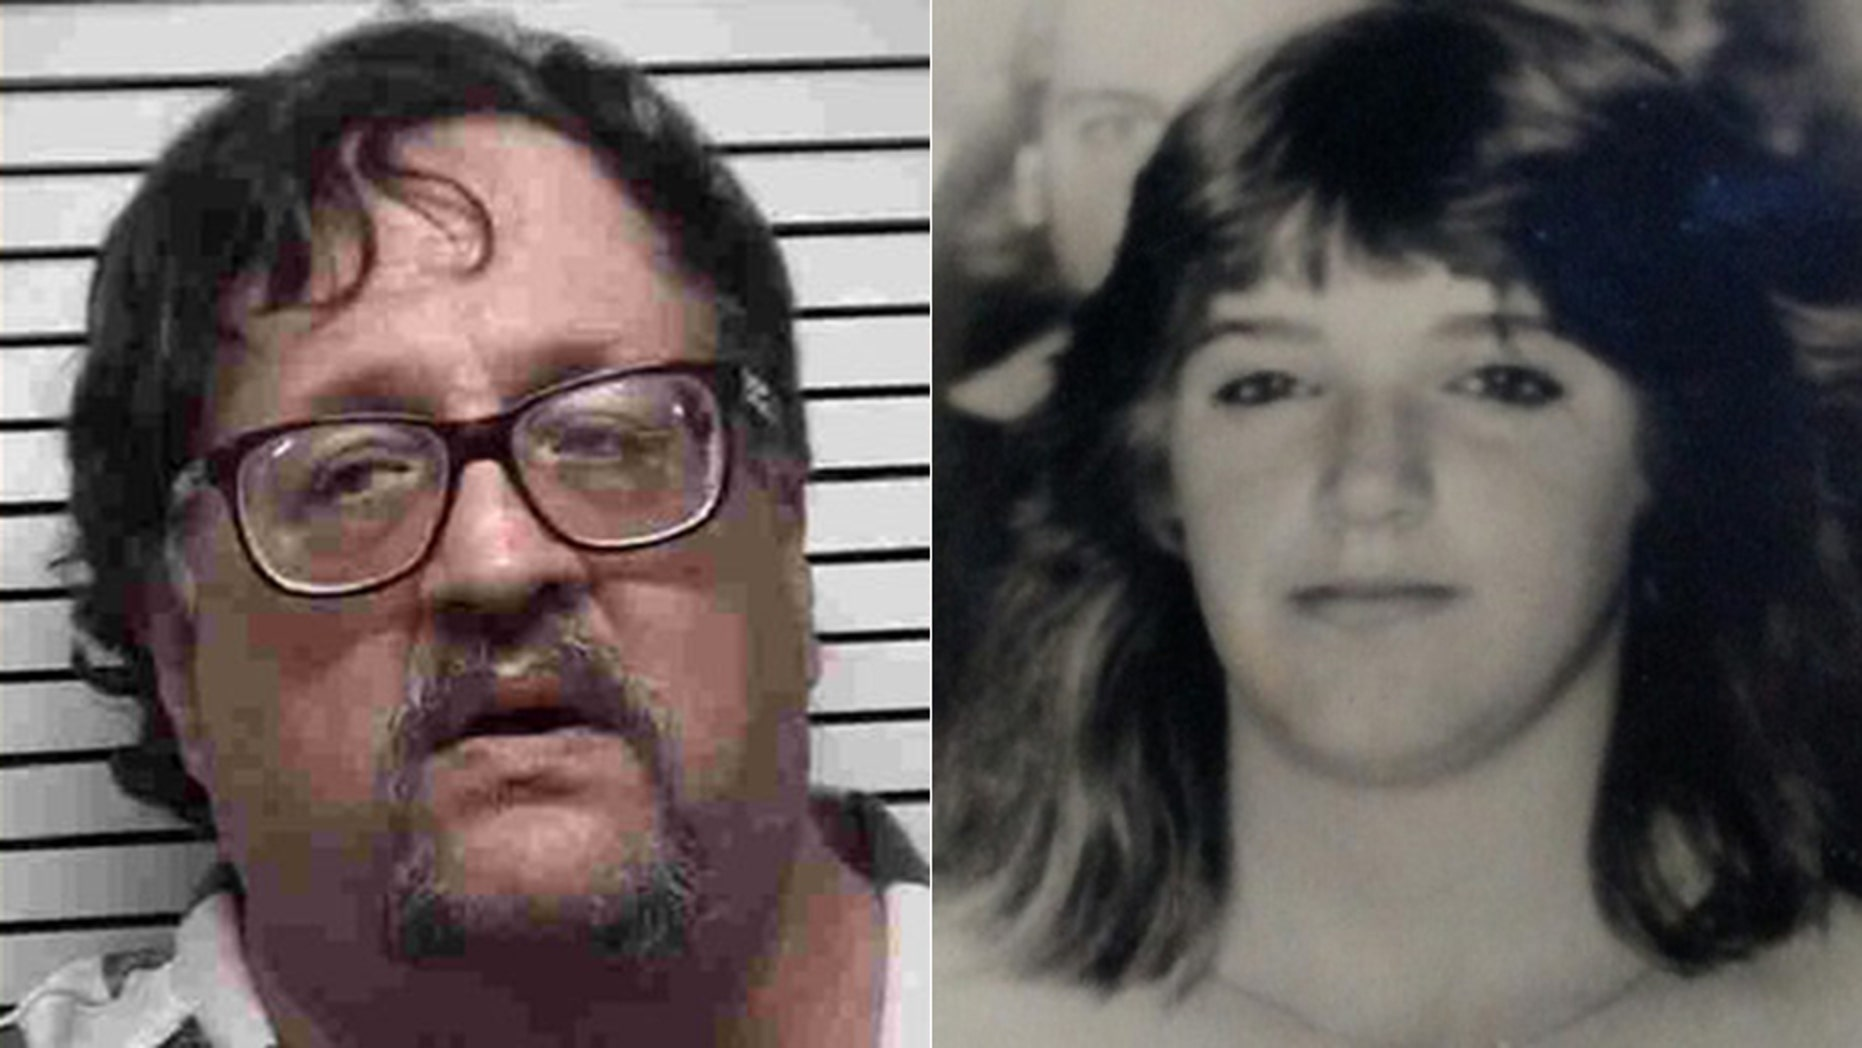 Michael Hand, 61, of Troutman, N.C., has been arrested for the October 1986 murder of 15-year-old Tracy Gilpin in Kingston, Mass.